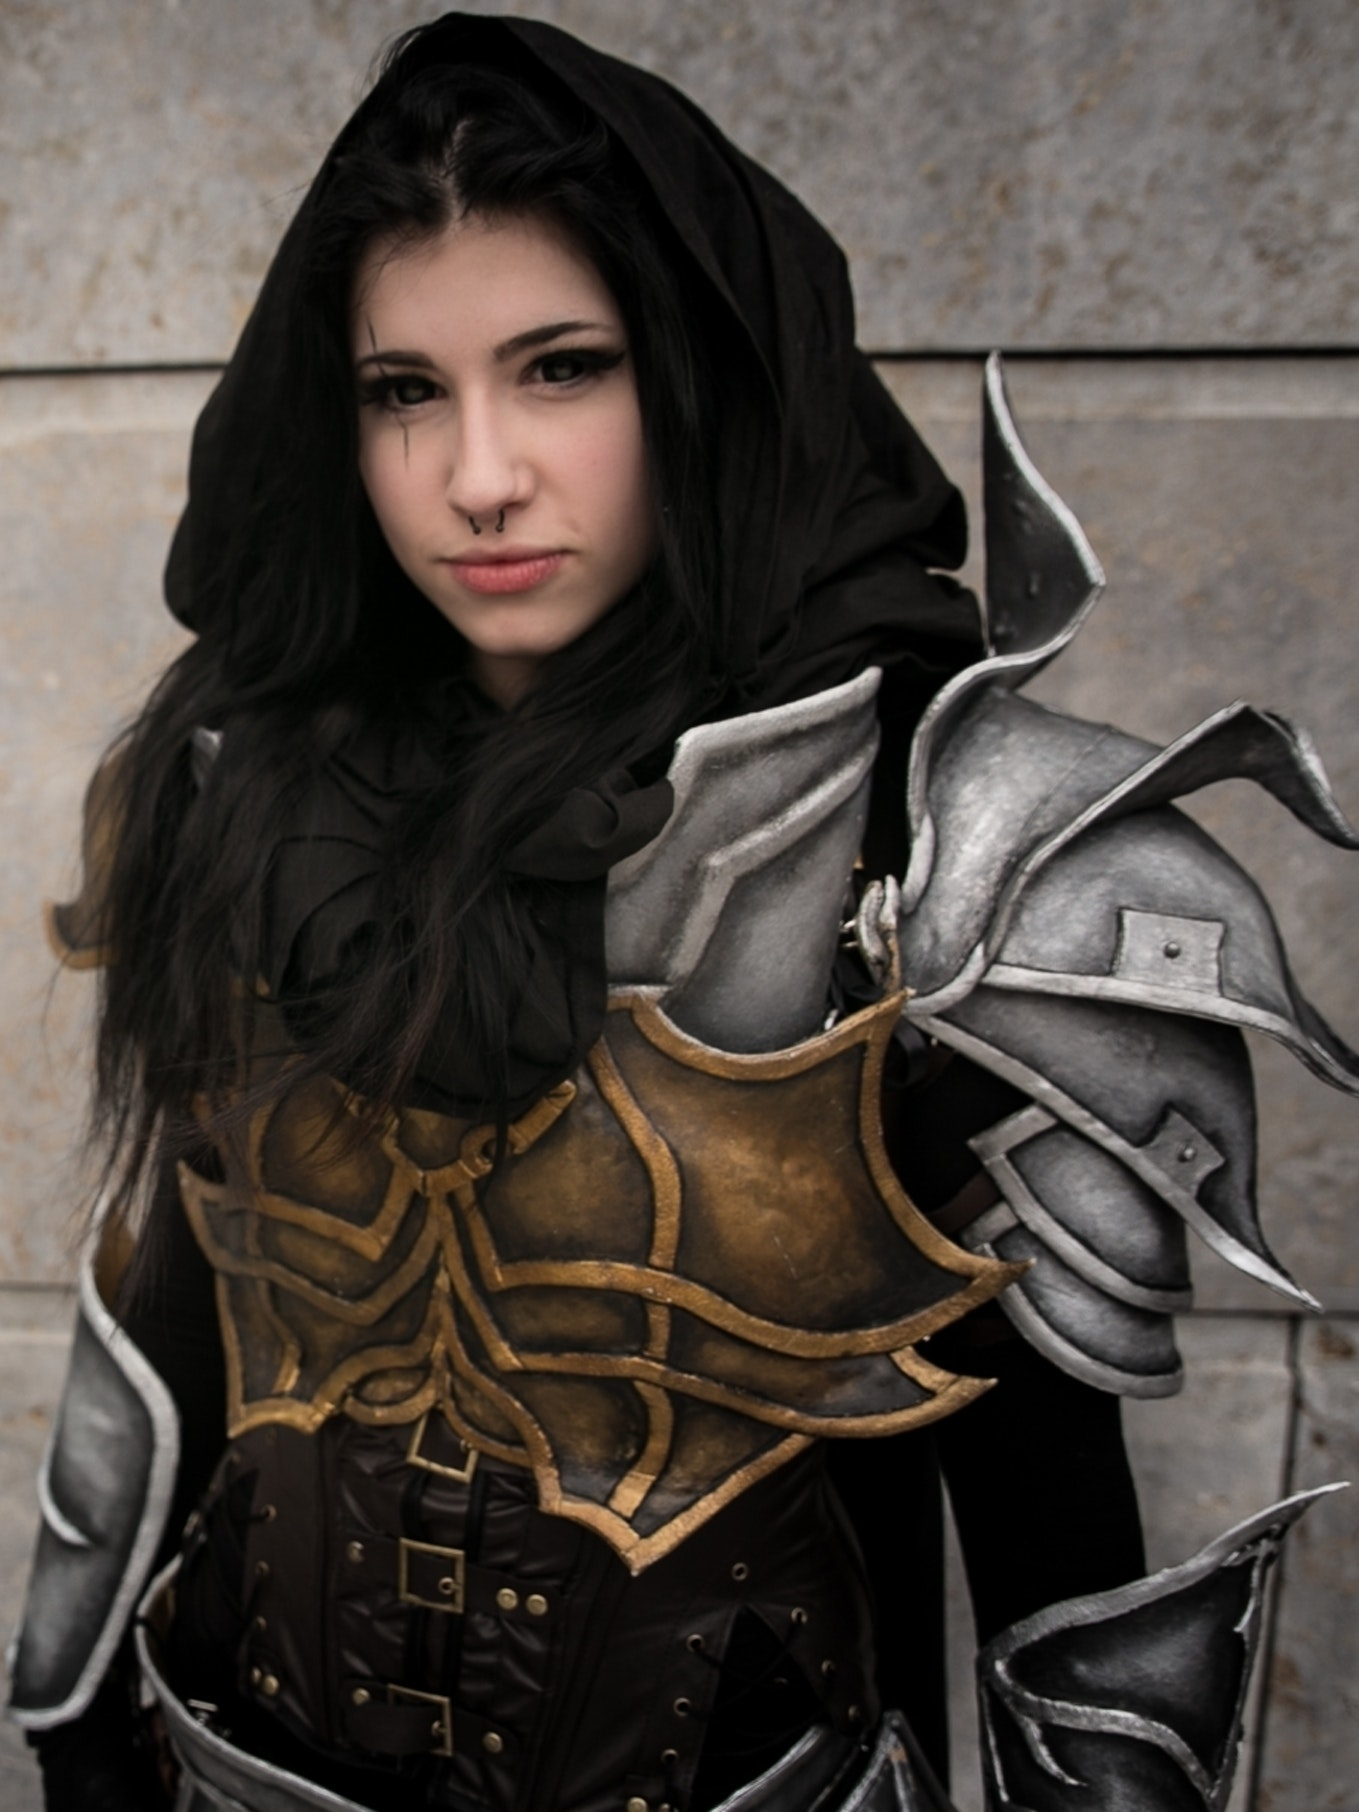 Annika Heip as Demon Hunter, wearing her self made costume with worbla armour, Photographer: Dartura/ThisMomentPictures